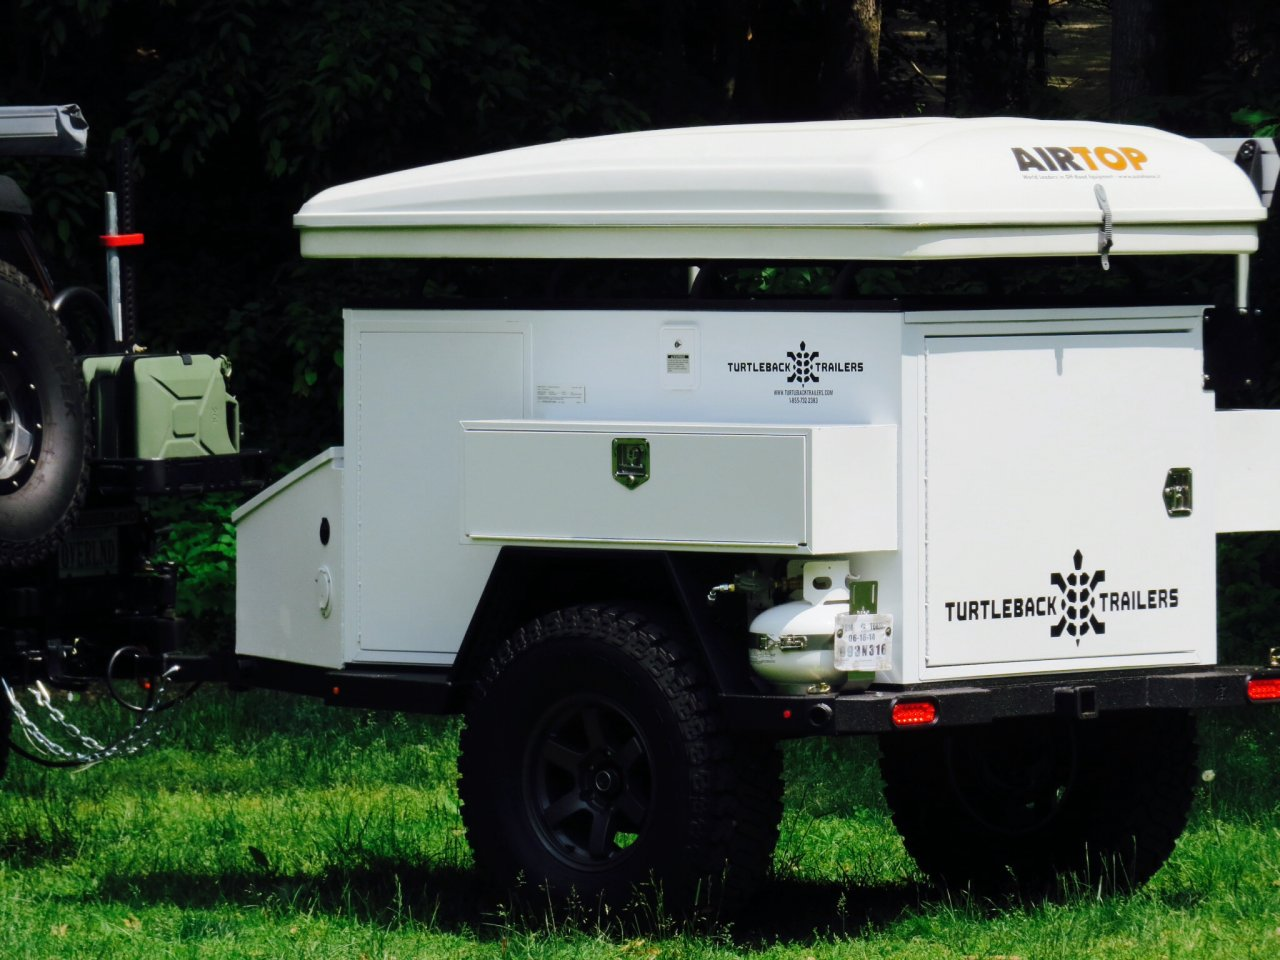 image.jpg image.jpg ... & For Sale - Turtleback Trailer and Airtop Tent  Fairfax Va ...